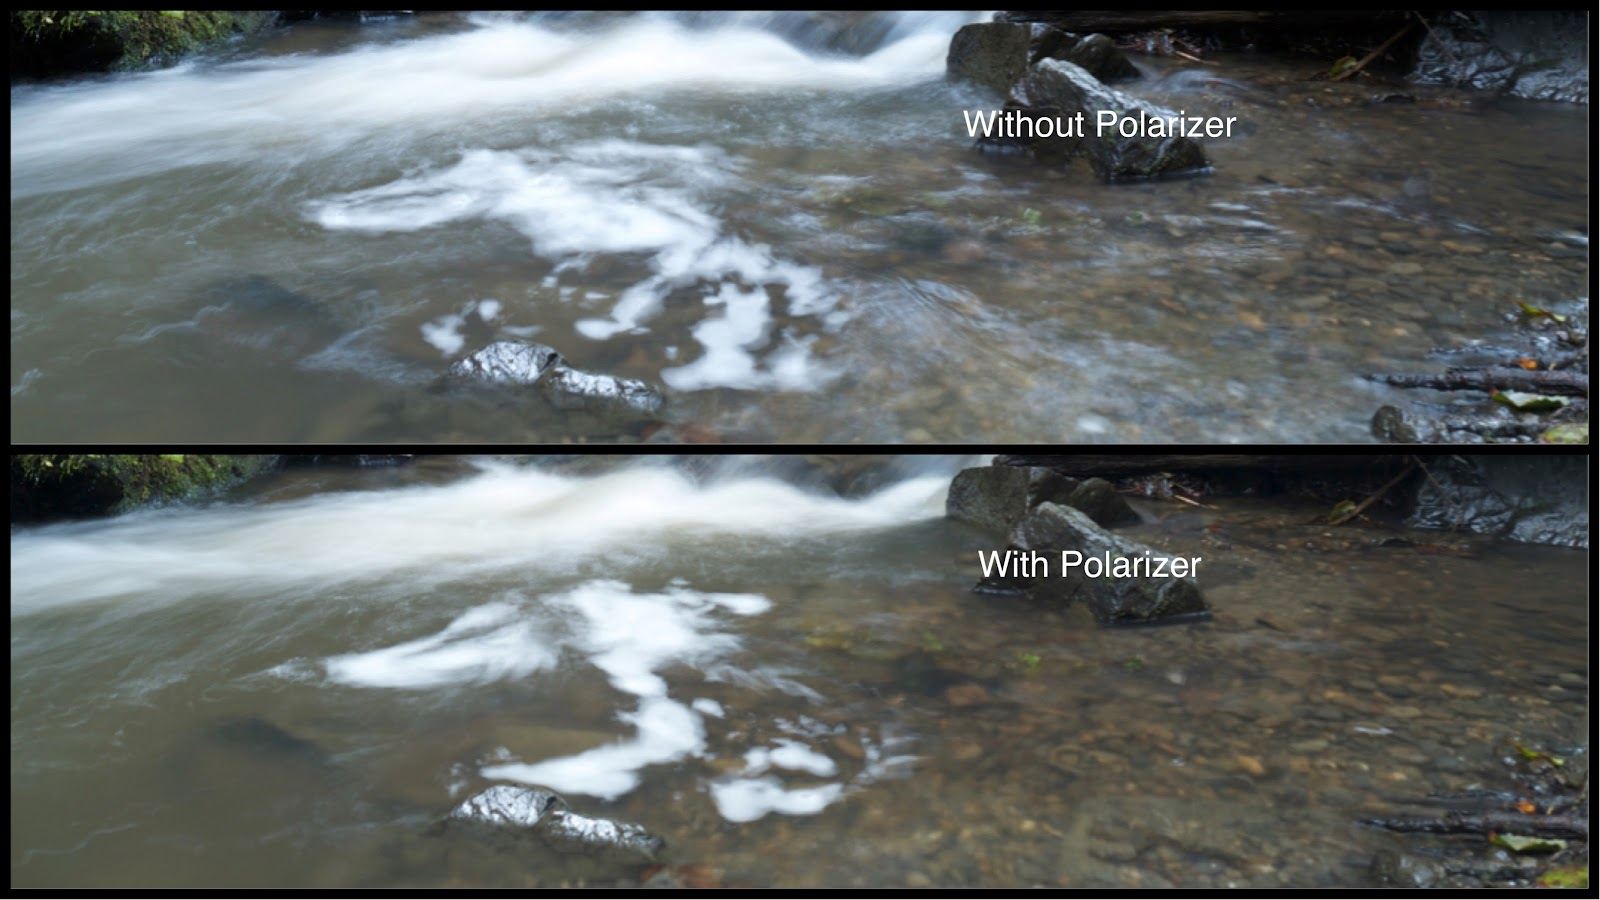 With and Without Crops for Polarizer